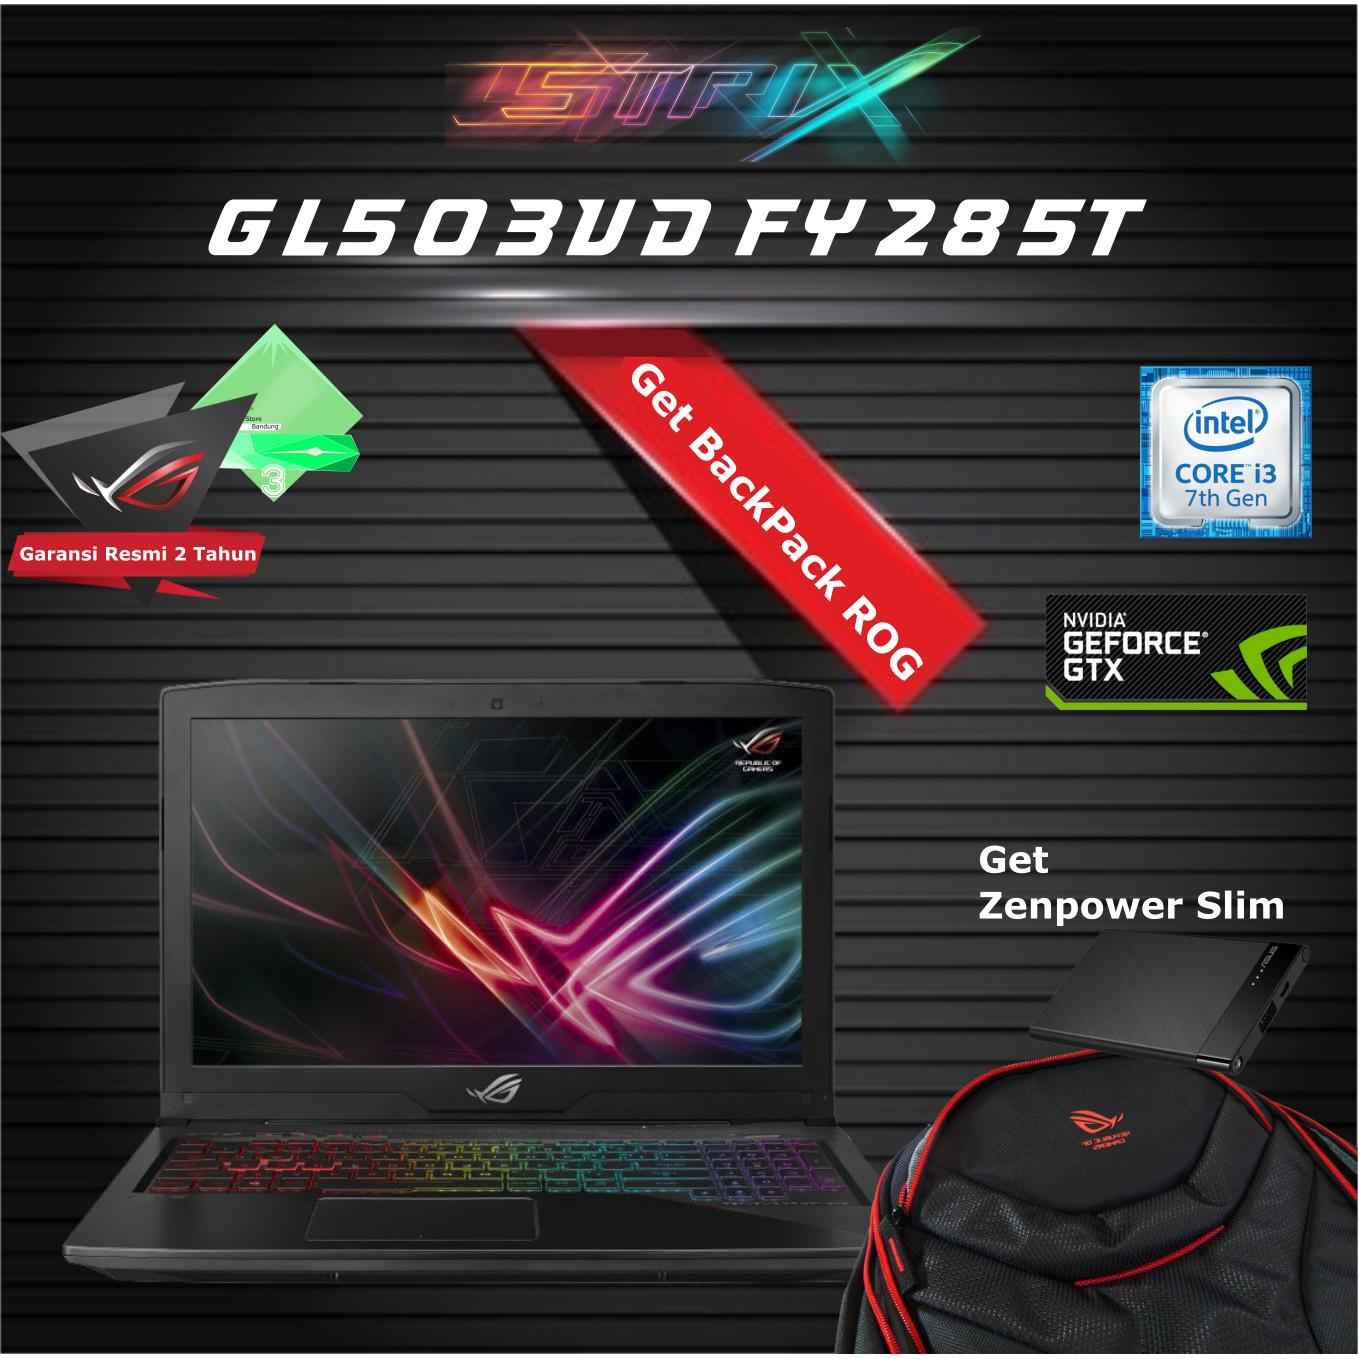 Asus ROG GL503VD-FY285T Laptop Gaming - Black [Intel Core i7/ 15.6 Inch/ RAM 8GB DDR4/ HDD 8GB+1 TB/ nVidia GTX1050M-4GB/ Win 10]